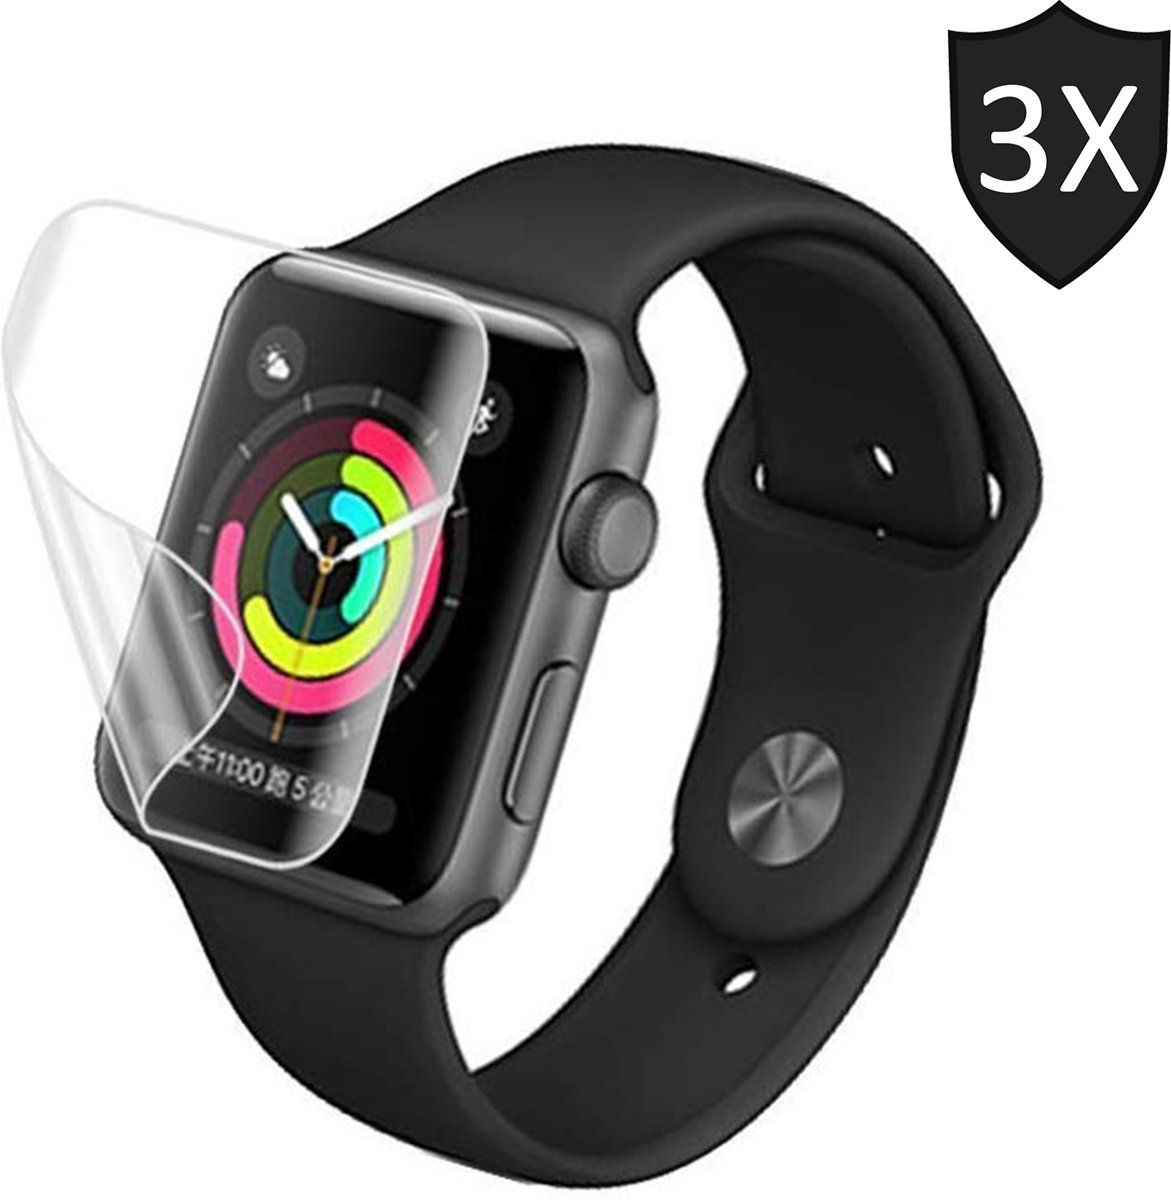 Screenprotector voor Apple Watch 44mm Series 4 van iCall - Crystal Clear - 3 stuks kopen